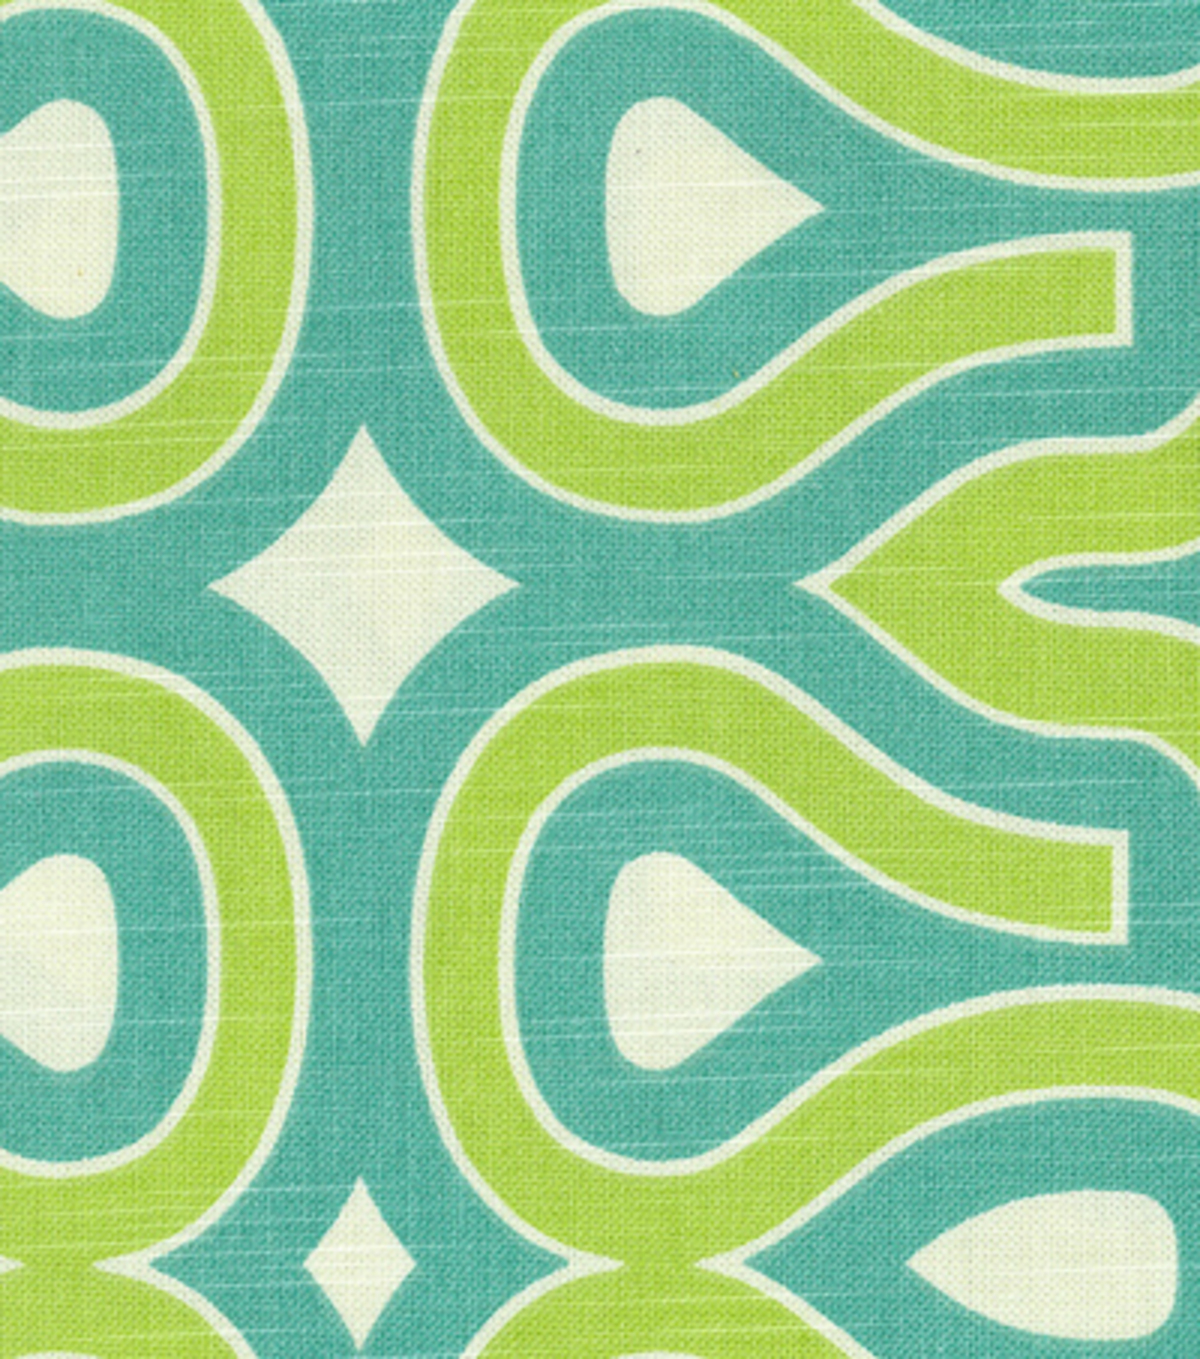 Home Decor 8\u0022x8\u0022 Fabric Swatch-Turtle Shell/turquoise